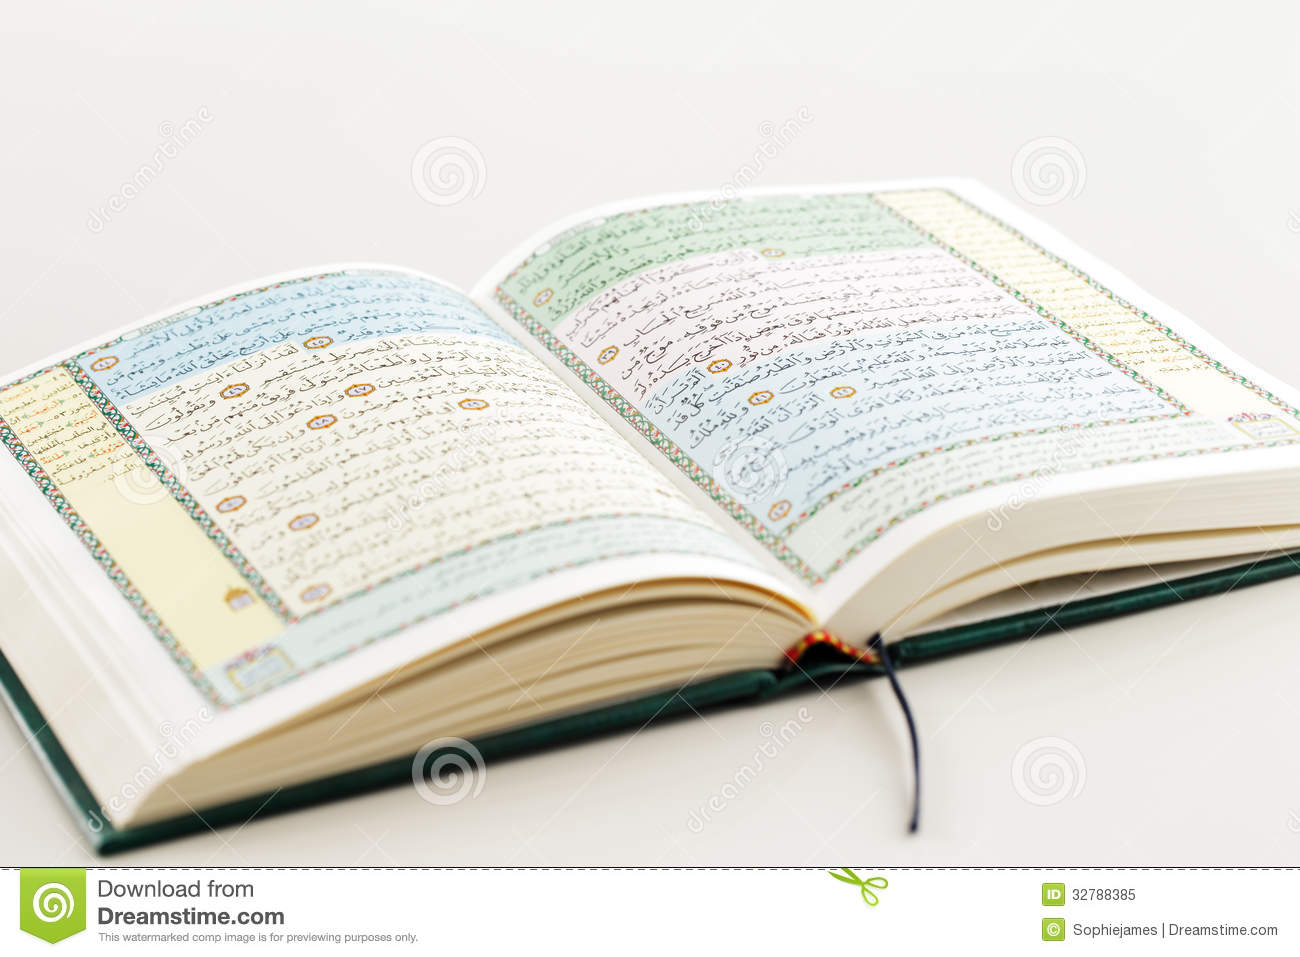 An Image Of Quran On A White Background Stock Image - Image